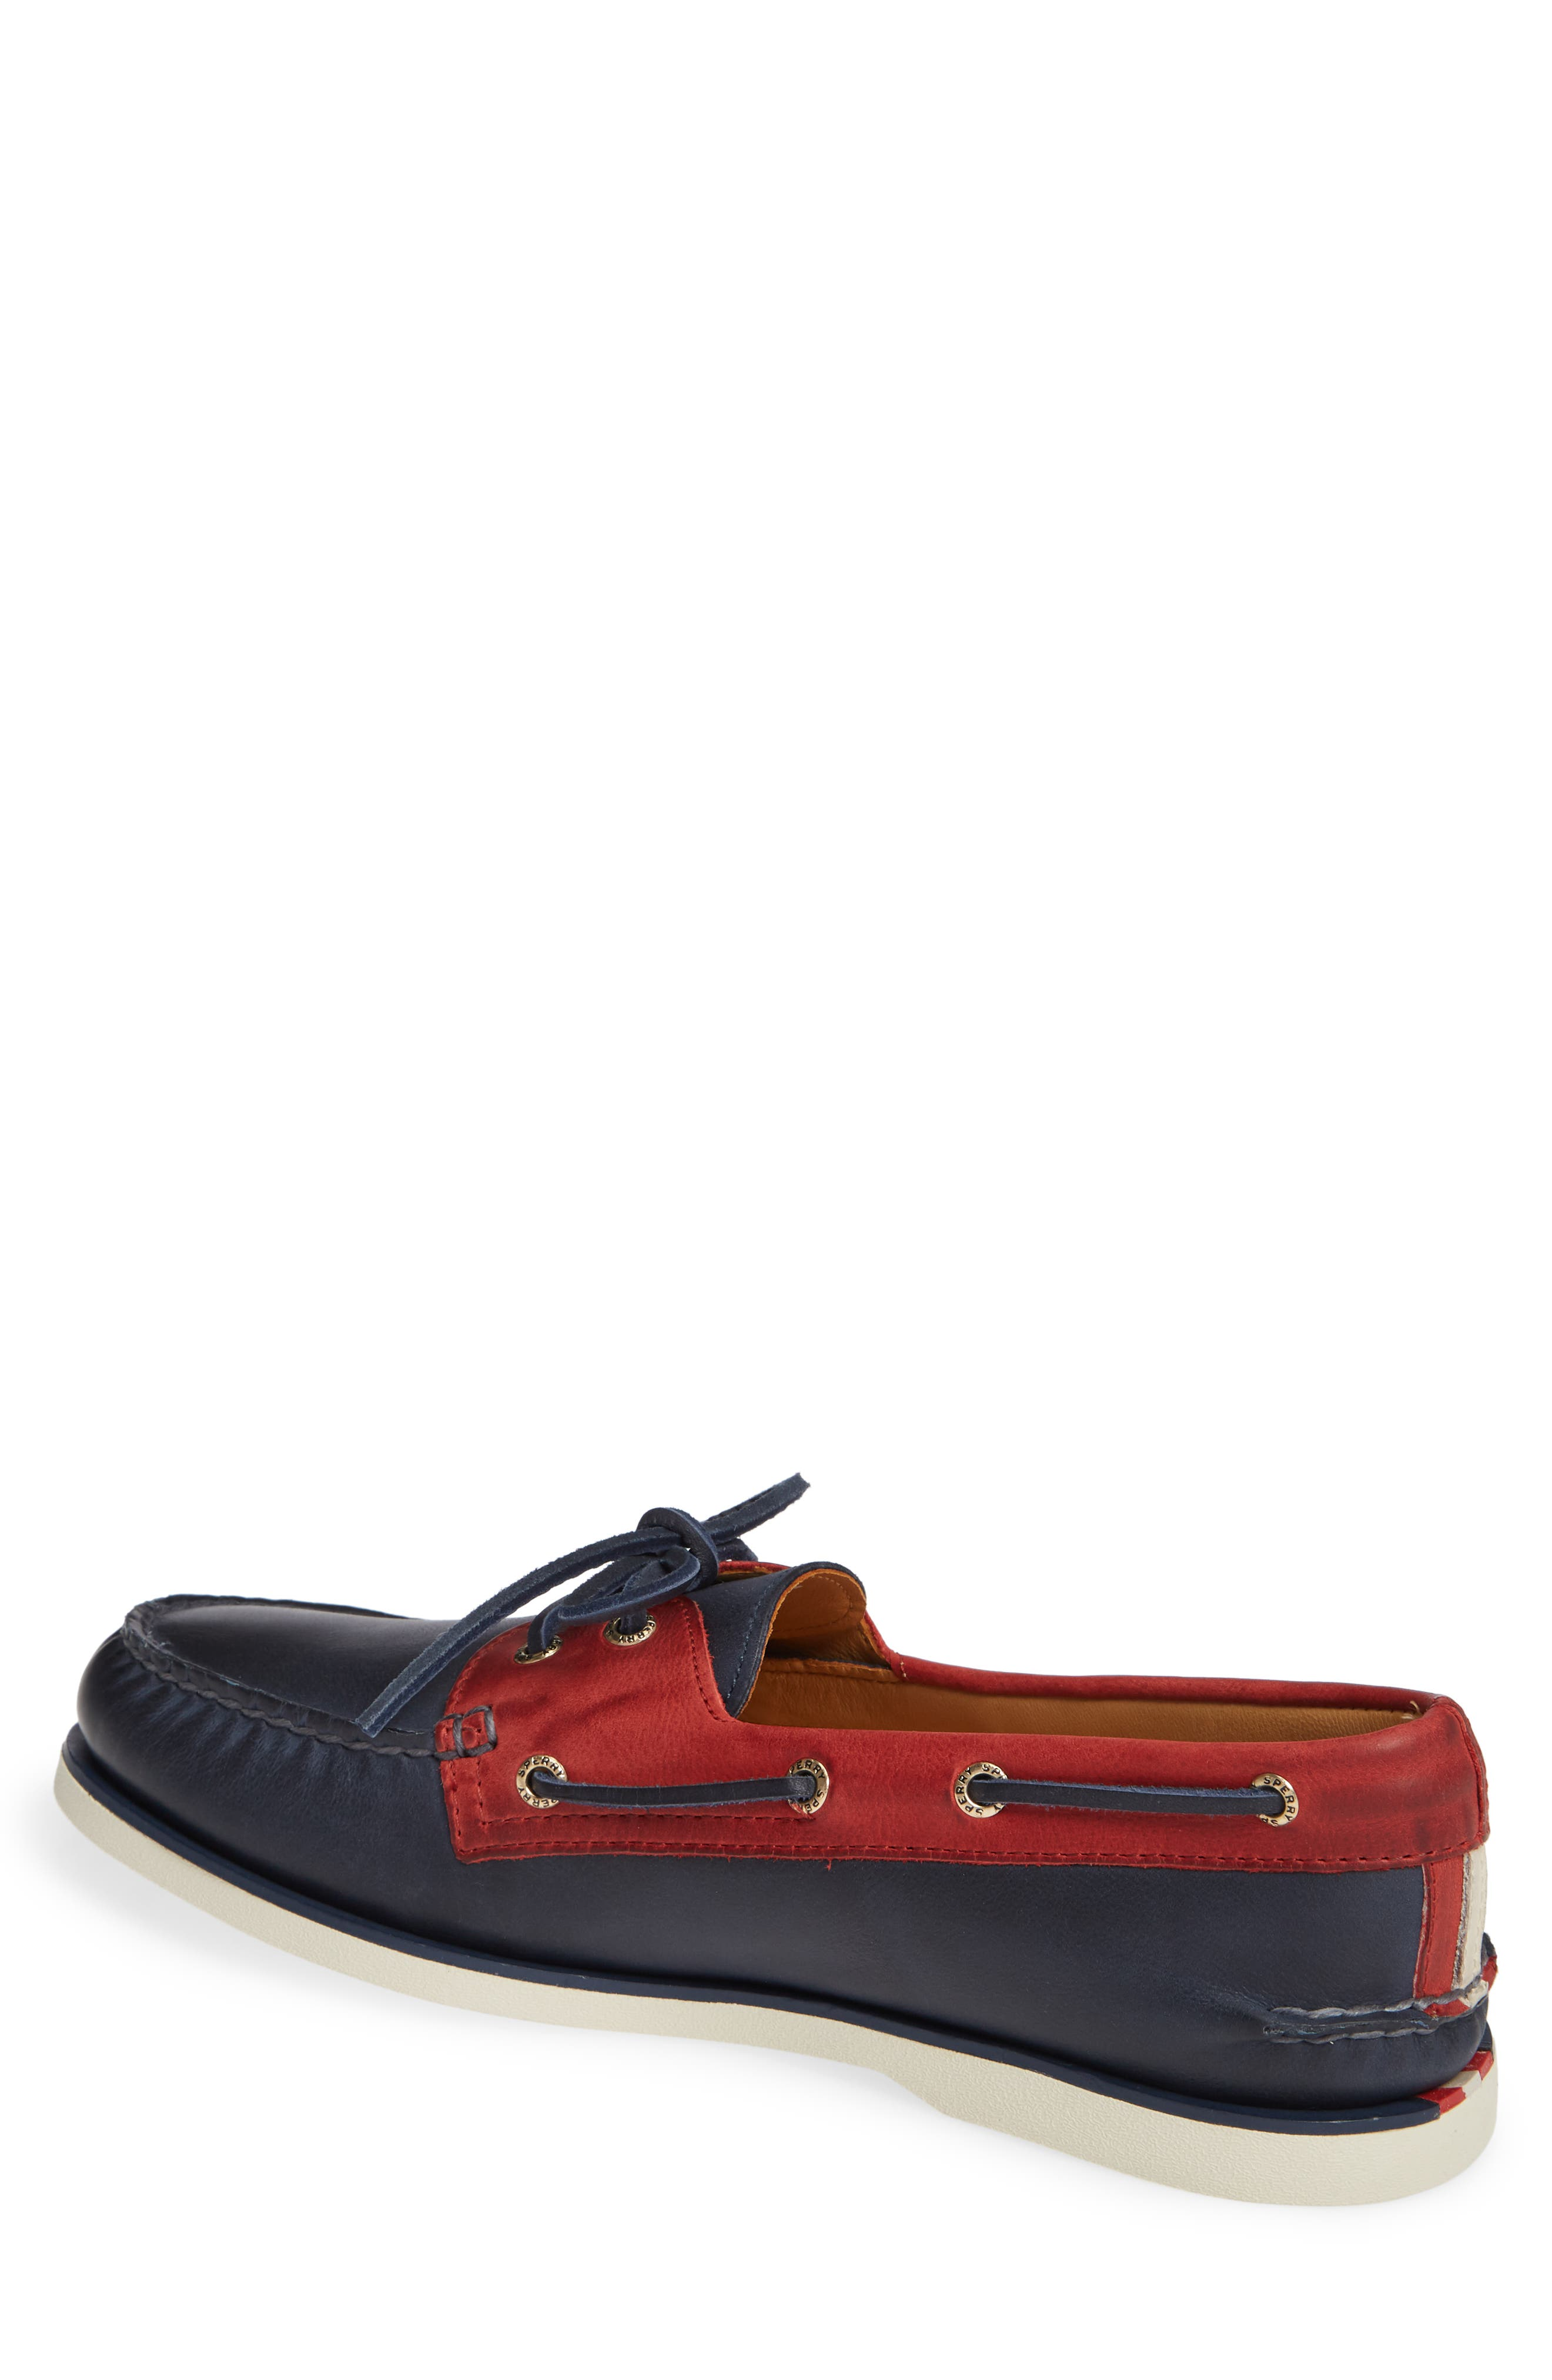 Gold Cup AO Boat Shoe,                             Alternate thumbnail 2, color,                             NAVY/ RED